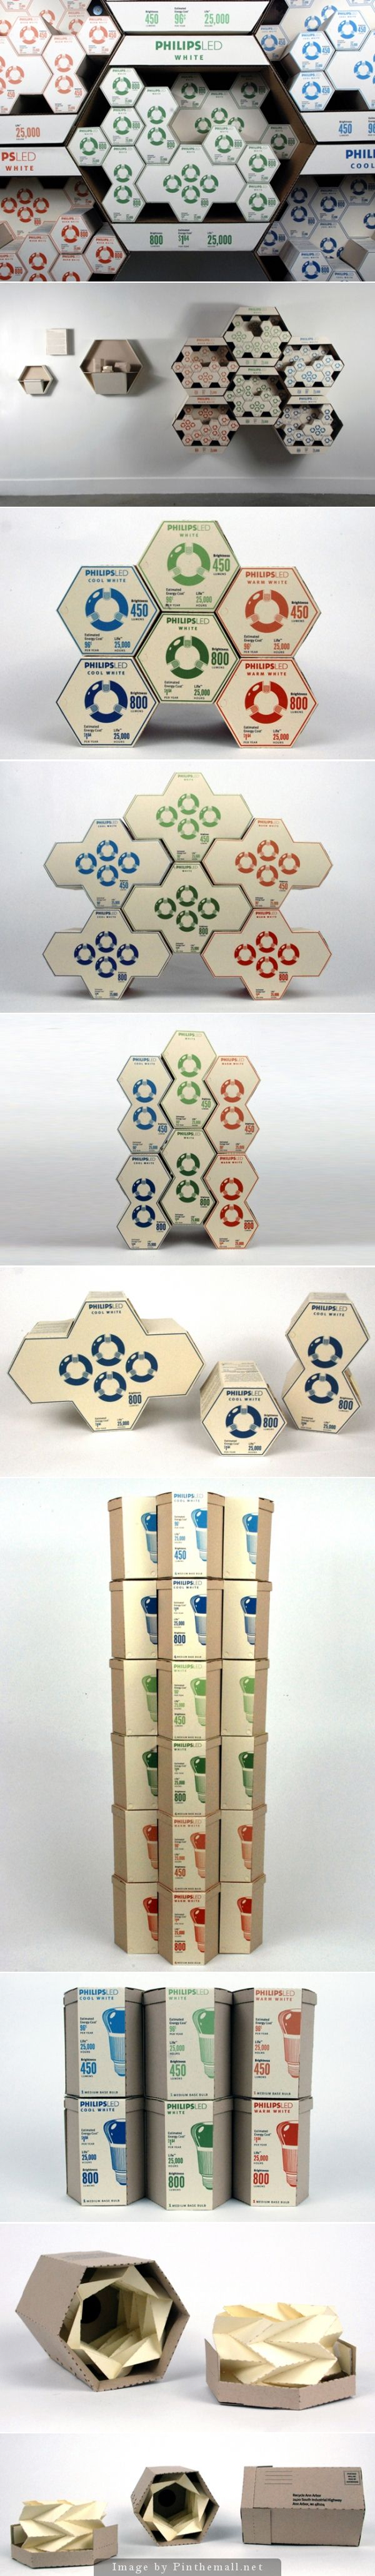 Redesigning LED Packaging (Student Work) on Packaging of the World - Creative Package Design Gallery